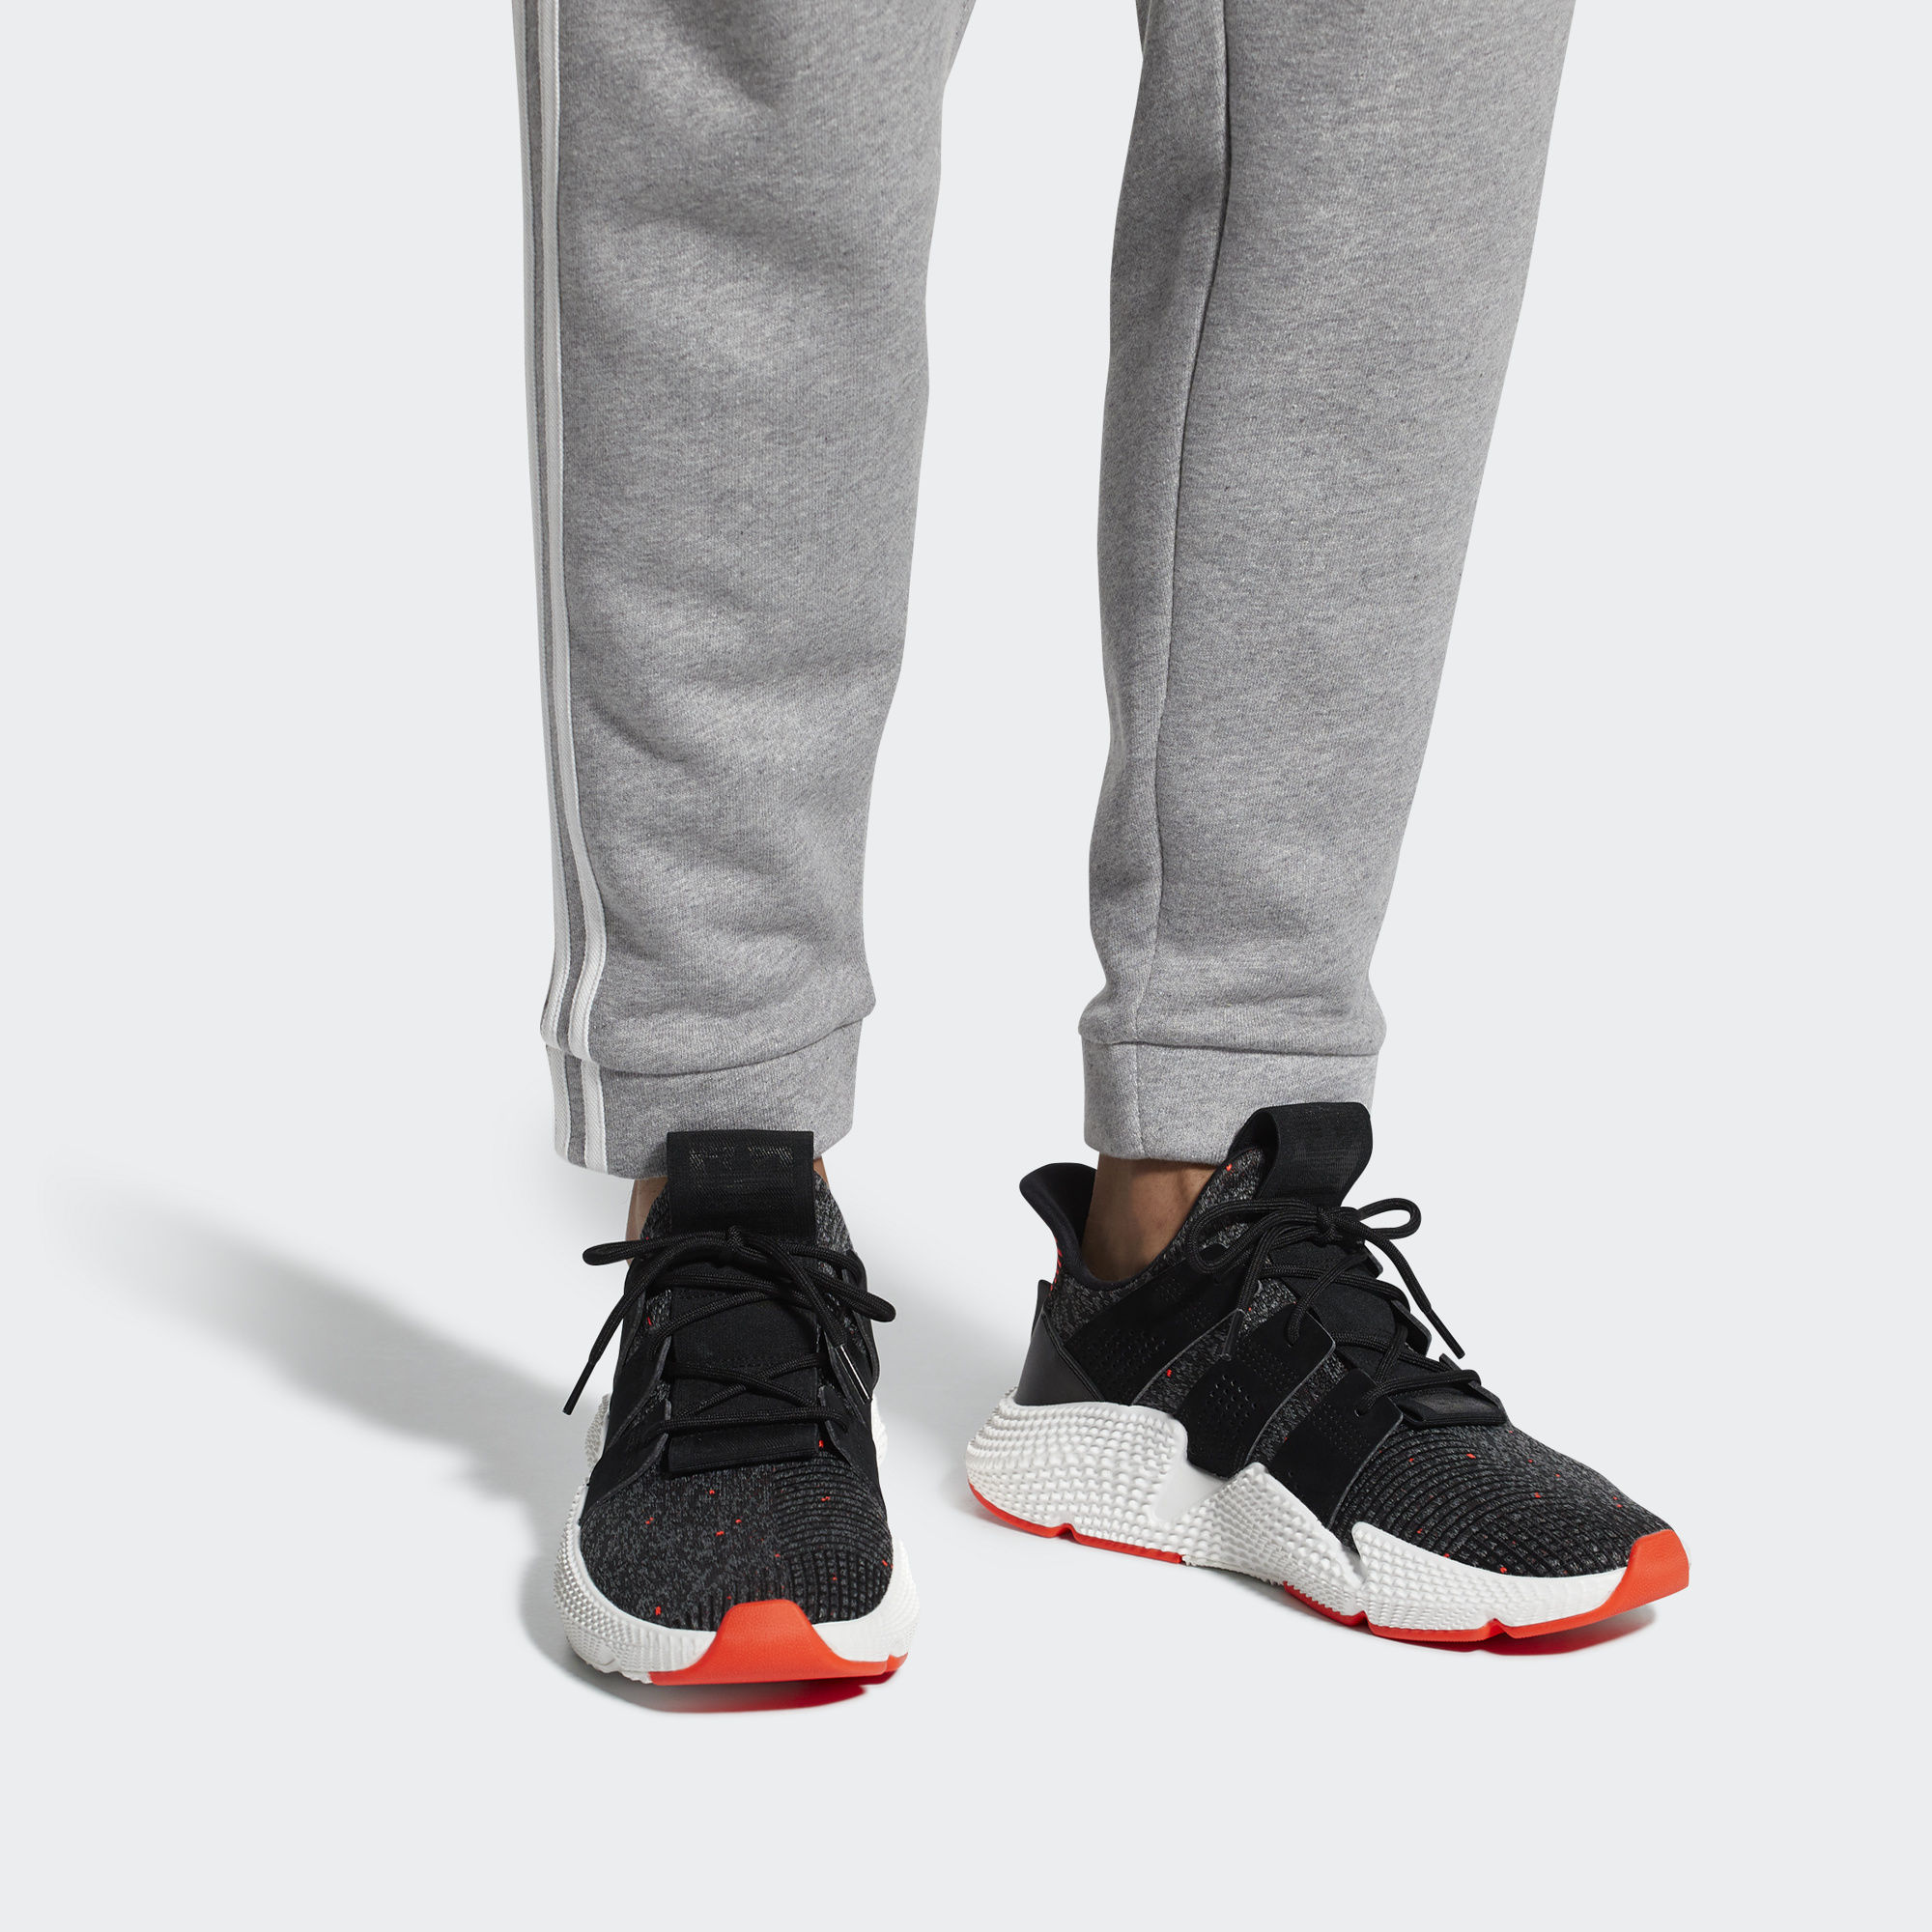 18a7f7fd6729 Кроссовки Prophere M CQ3022 adidas Originals - Украина   ONETEAM.COM.UA